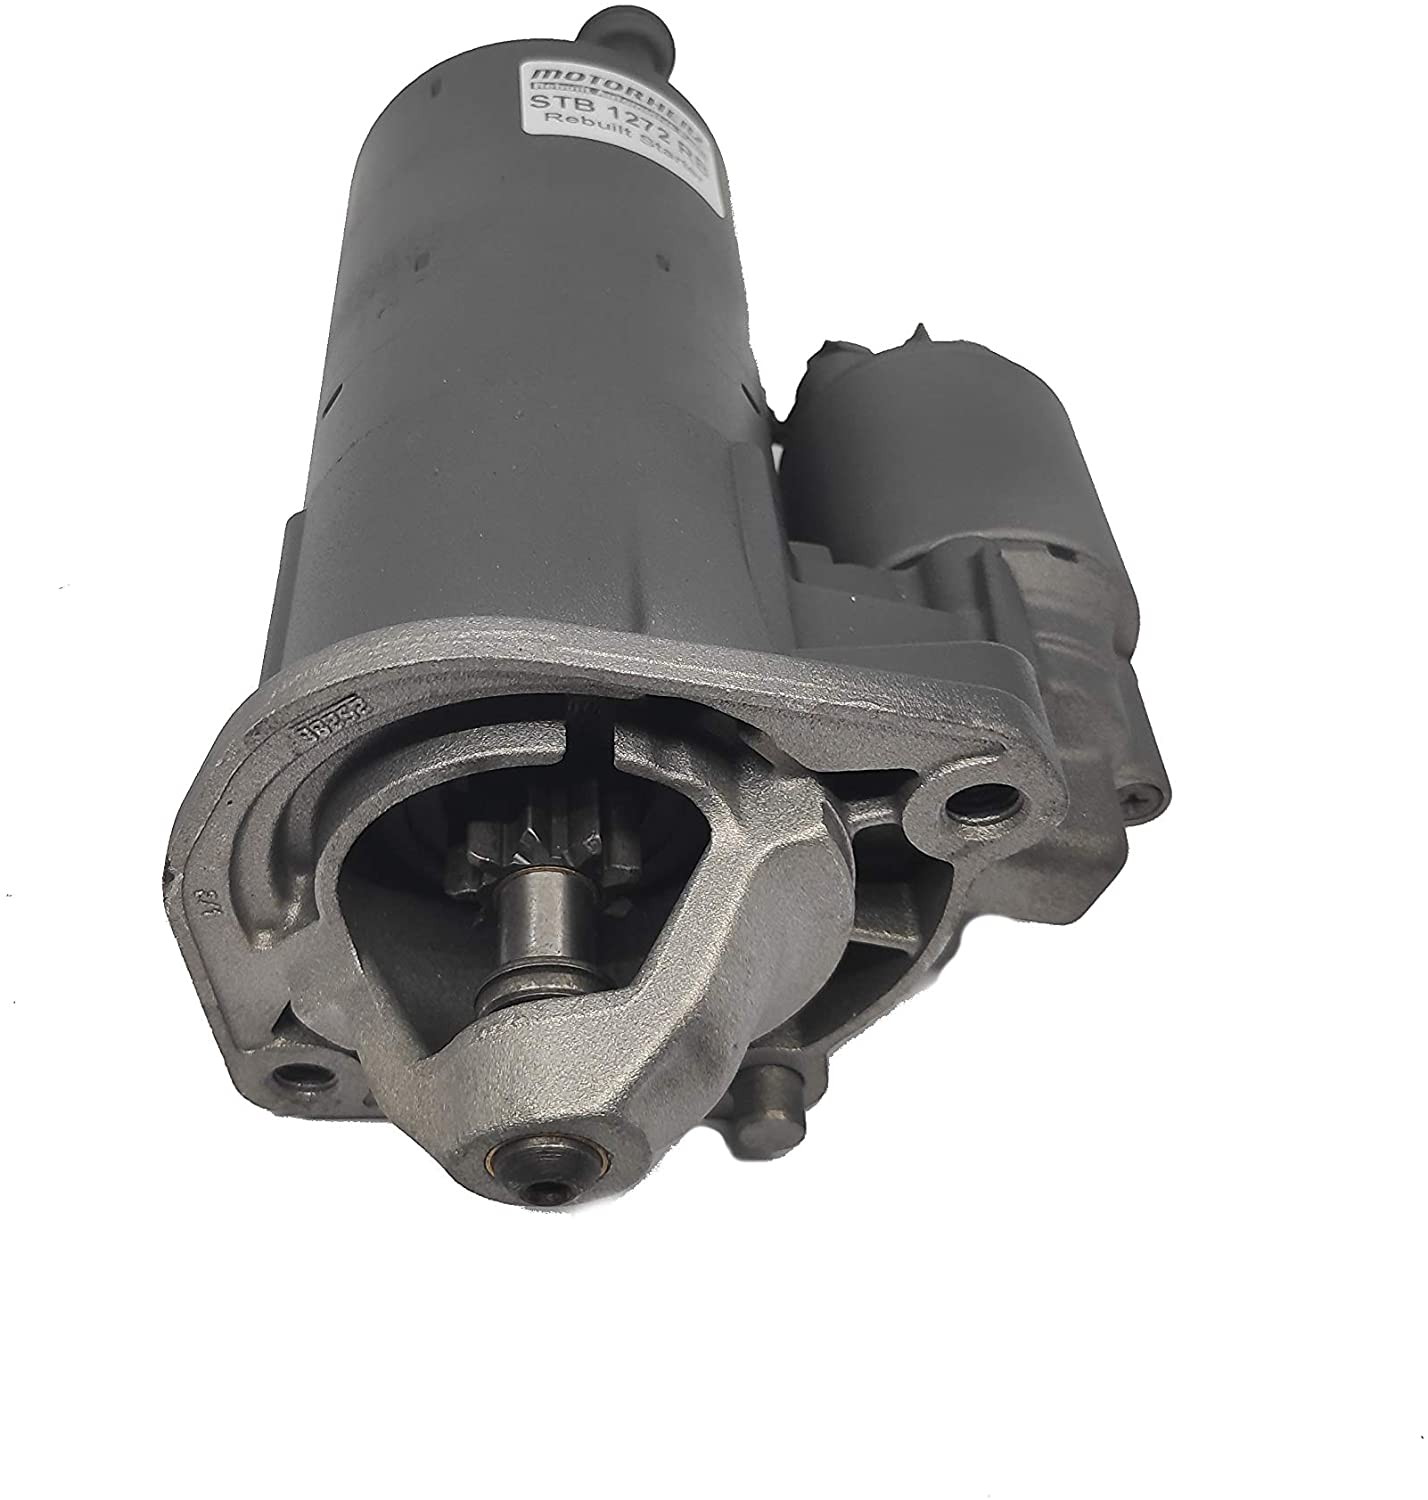 Starter STB1272RB Remanufactured by ATG Certified, 1 Year Warranty